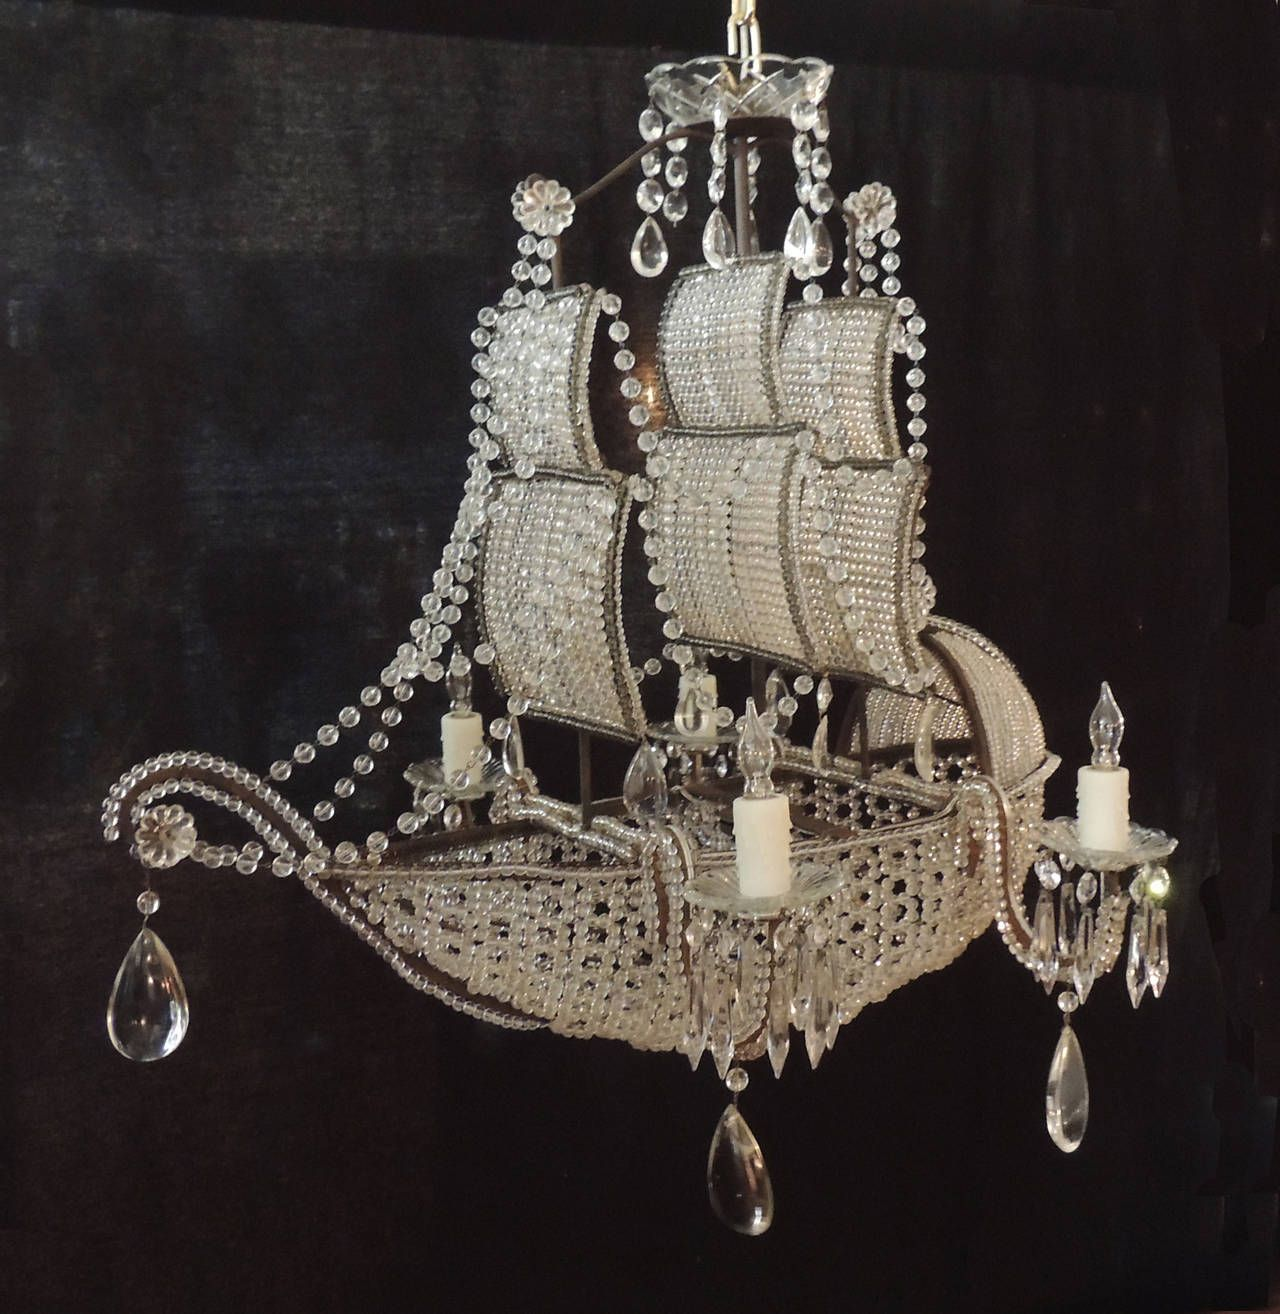 Early 1900s venetian crystal iron and tole ship chandelier early 1900s venetian crystal iron and tole ship chandelier arubaitofo Choice Image